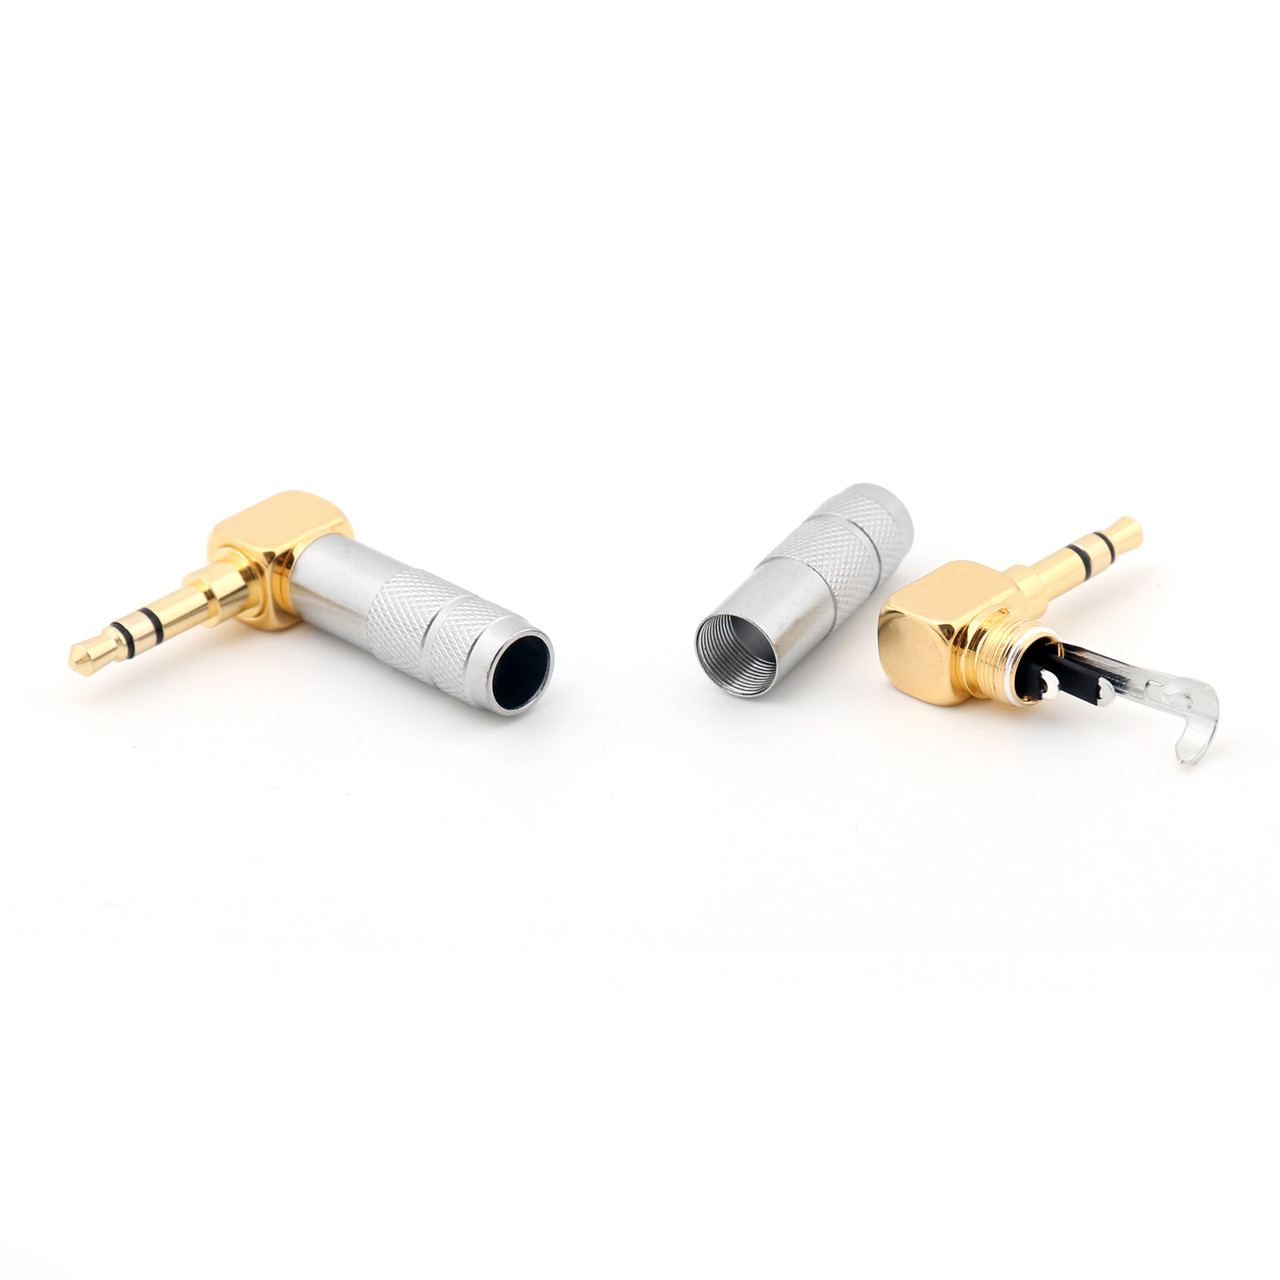 Mad Hornets 10PCS Gold Plated 3.5mm Stereo 3 Pole Male Plug 90 Degree Audio Connector Solder